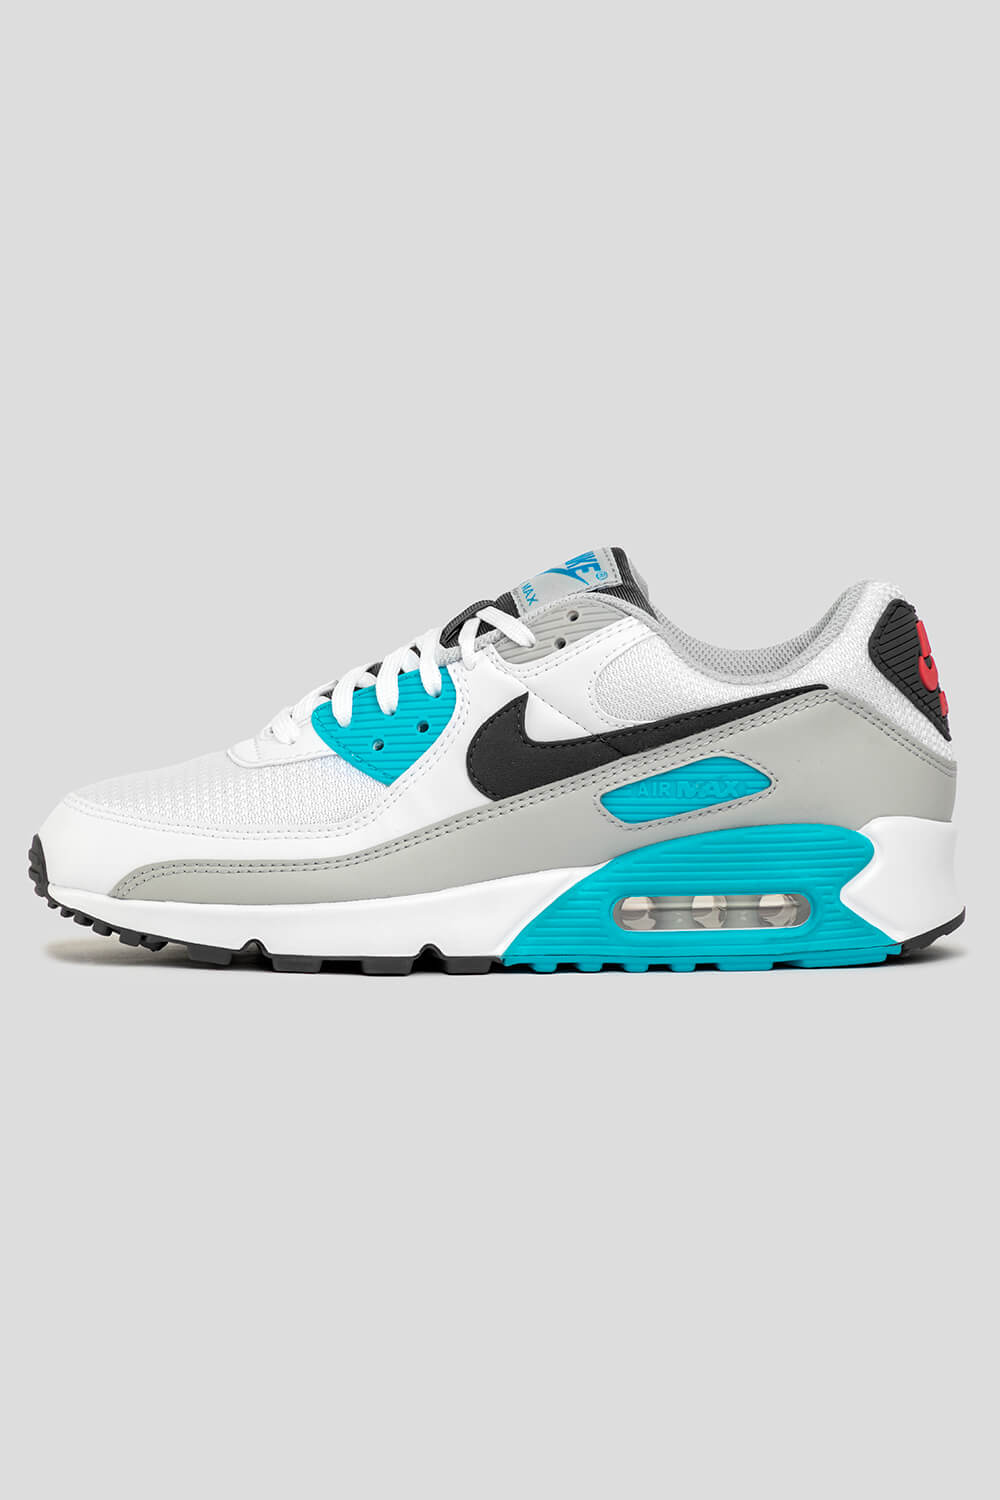 Air Max 90 'Chlorine Blue'